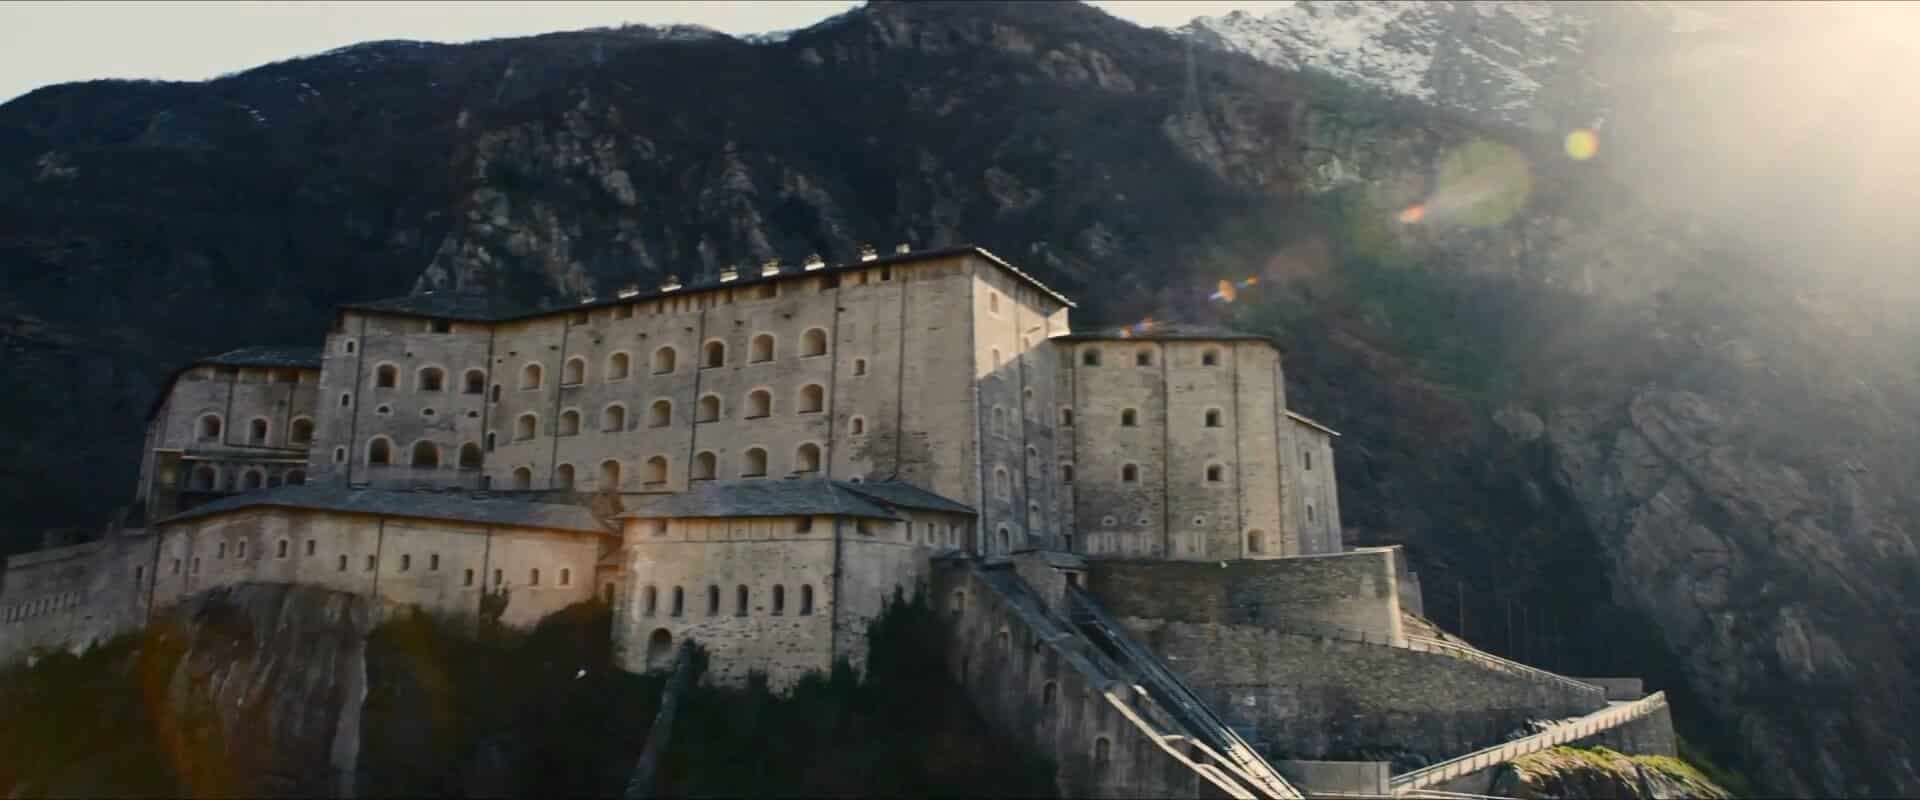 The Sokovia Castle of the Marvel Cinematic Universe is Fort Bard